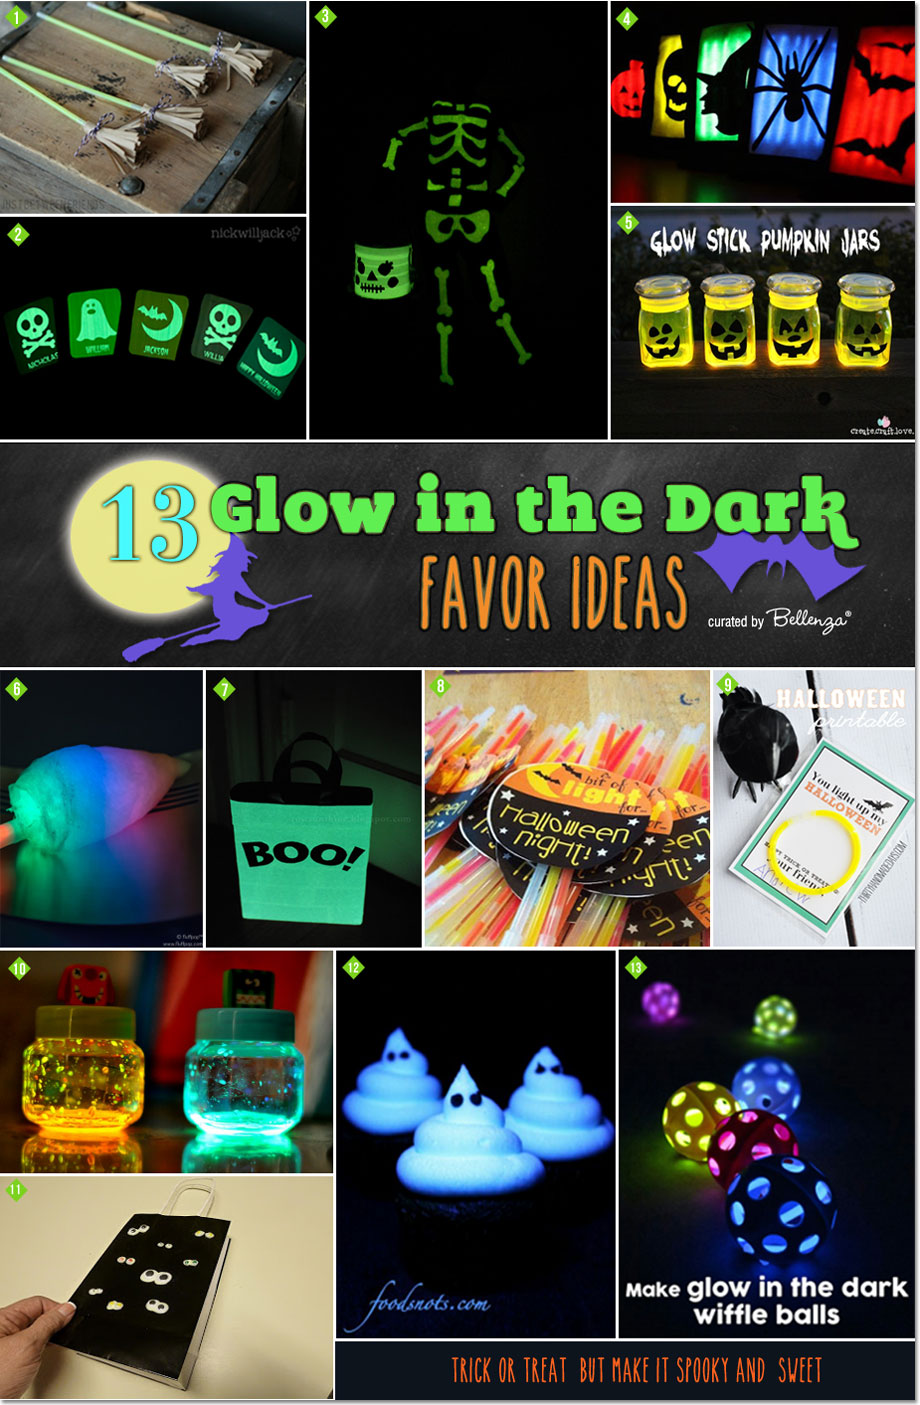 Glow in the Dark Halloween Favors You Can DIY